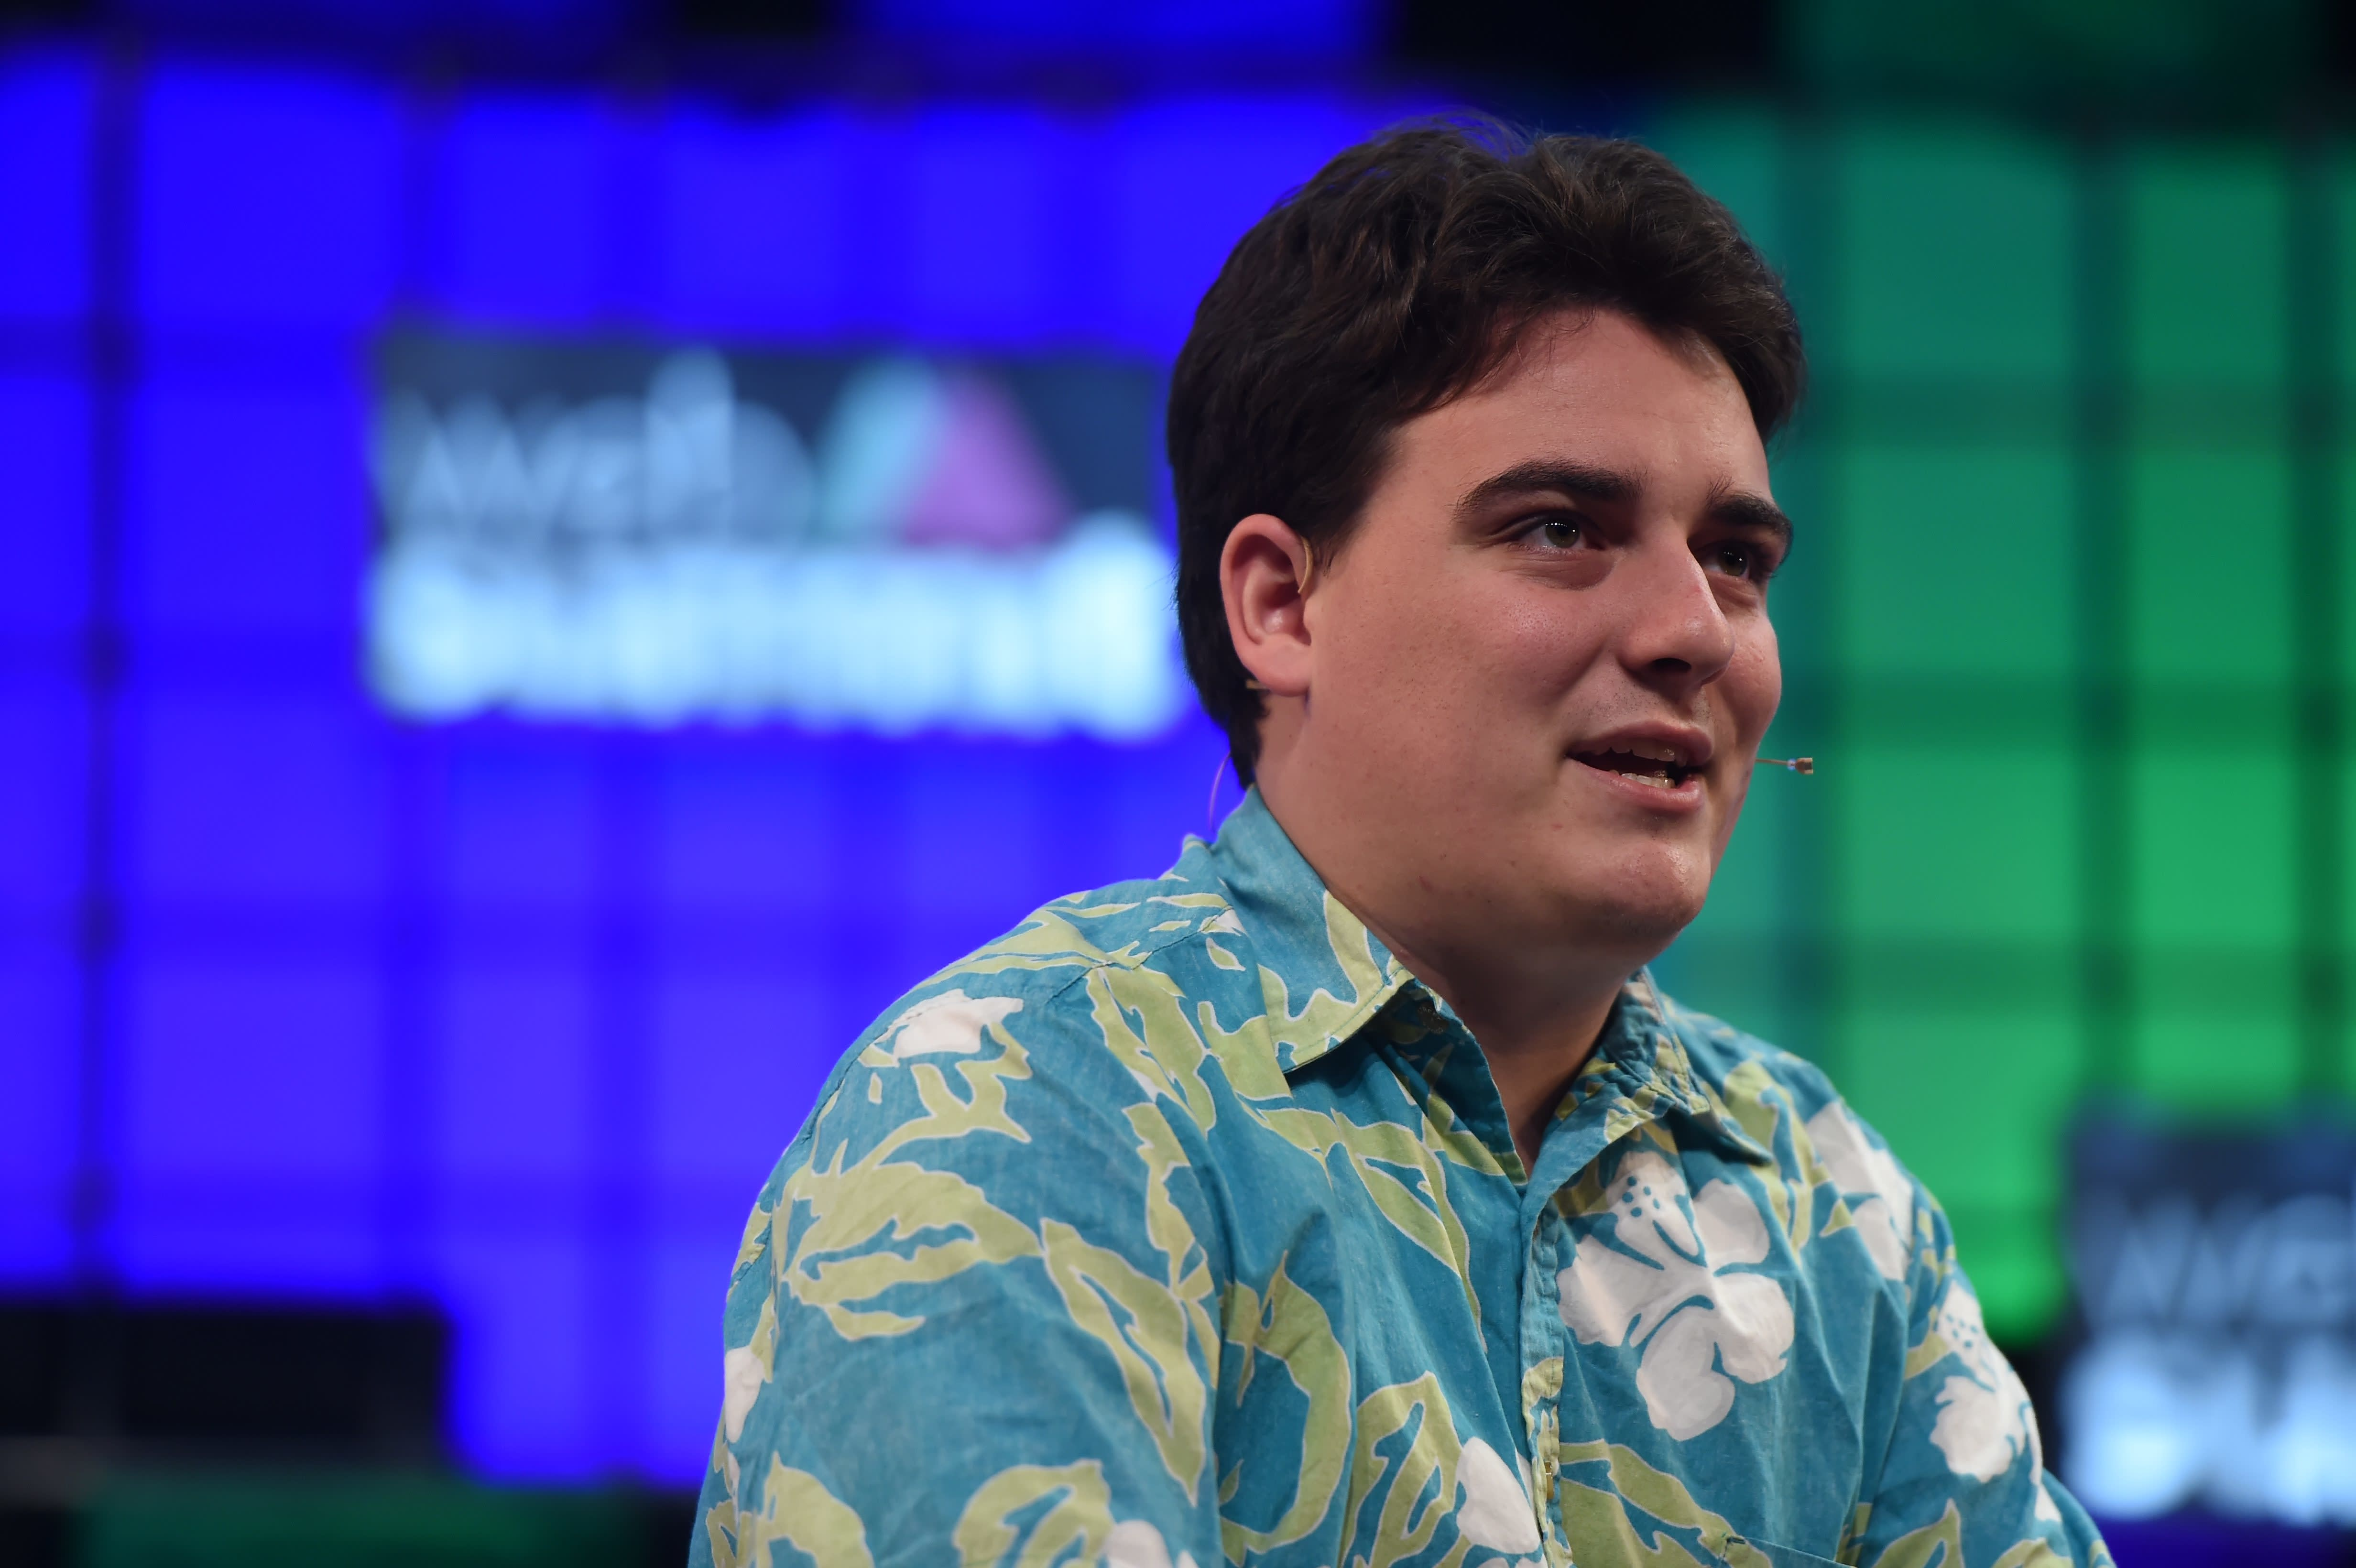 Oculus founder says he 'got fired' from Facebook, suggesting a pro-Trump donation was to blame